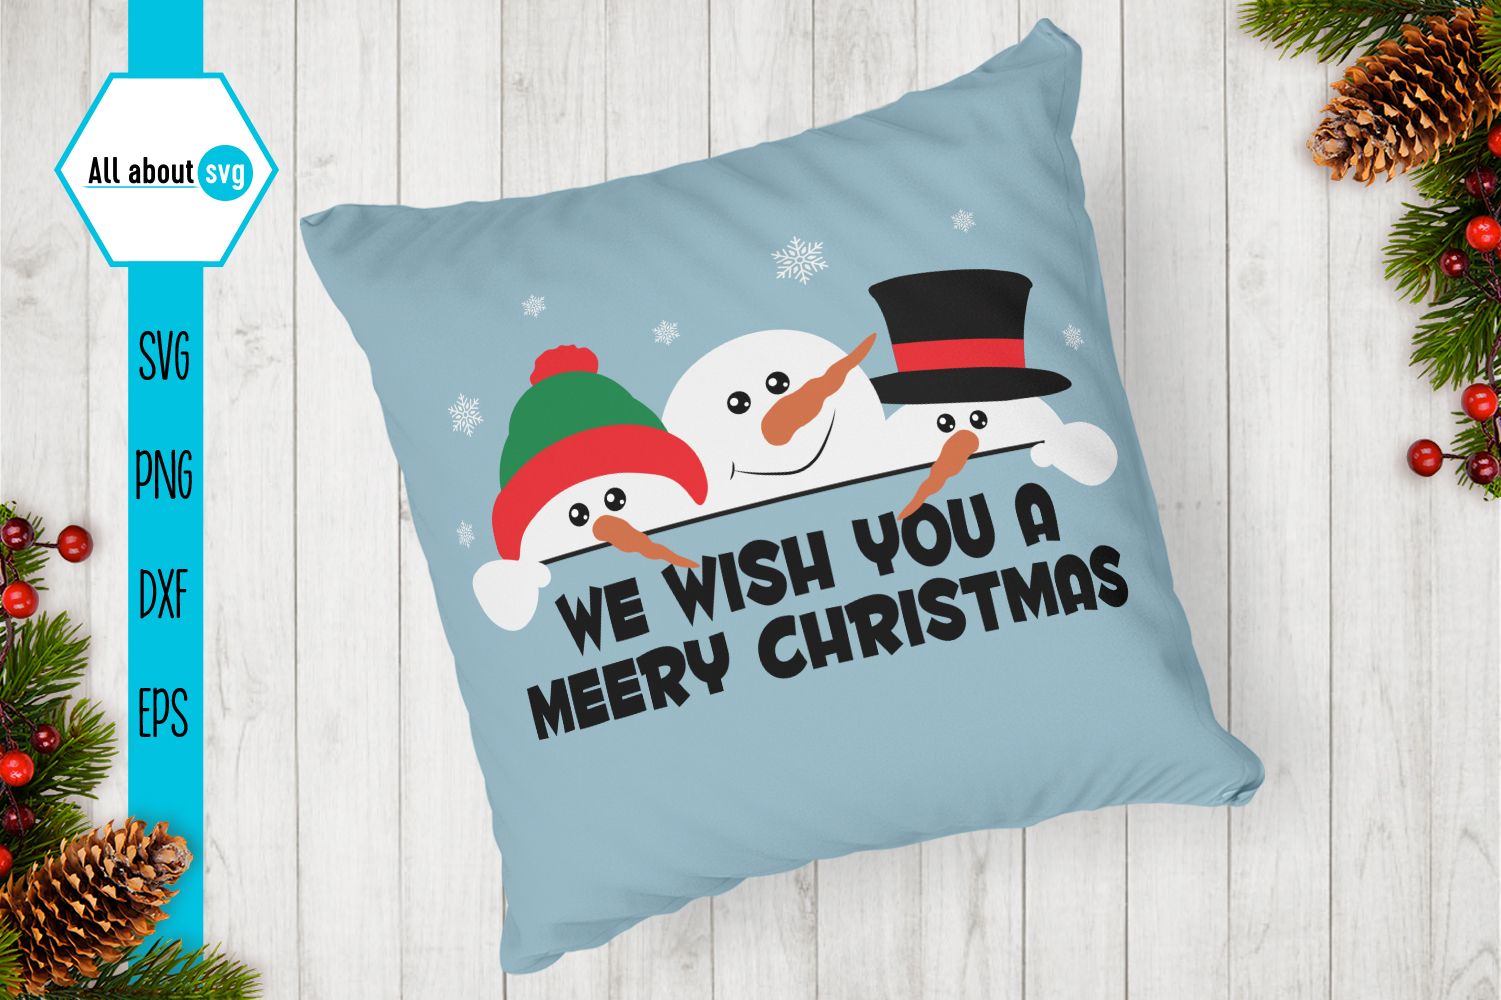 Snowman Svg, We wish You a Merry Christmas Svg example image 3